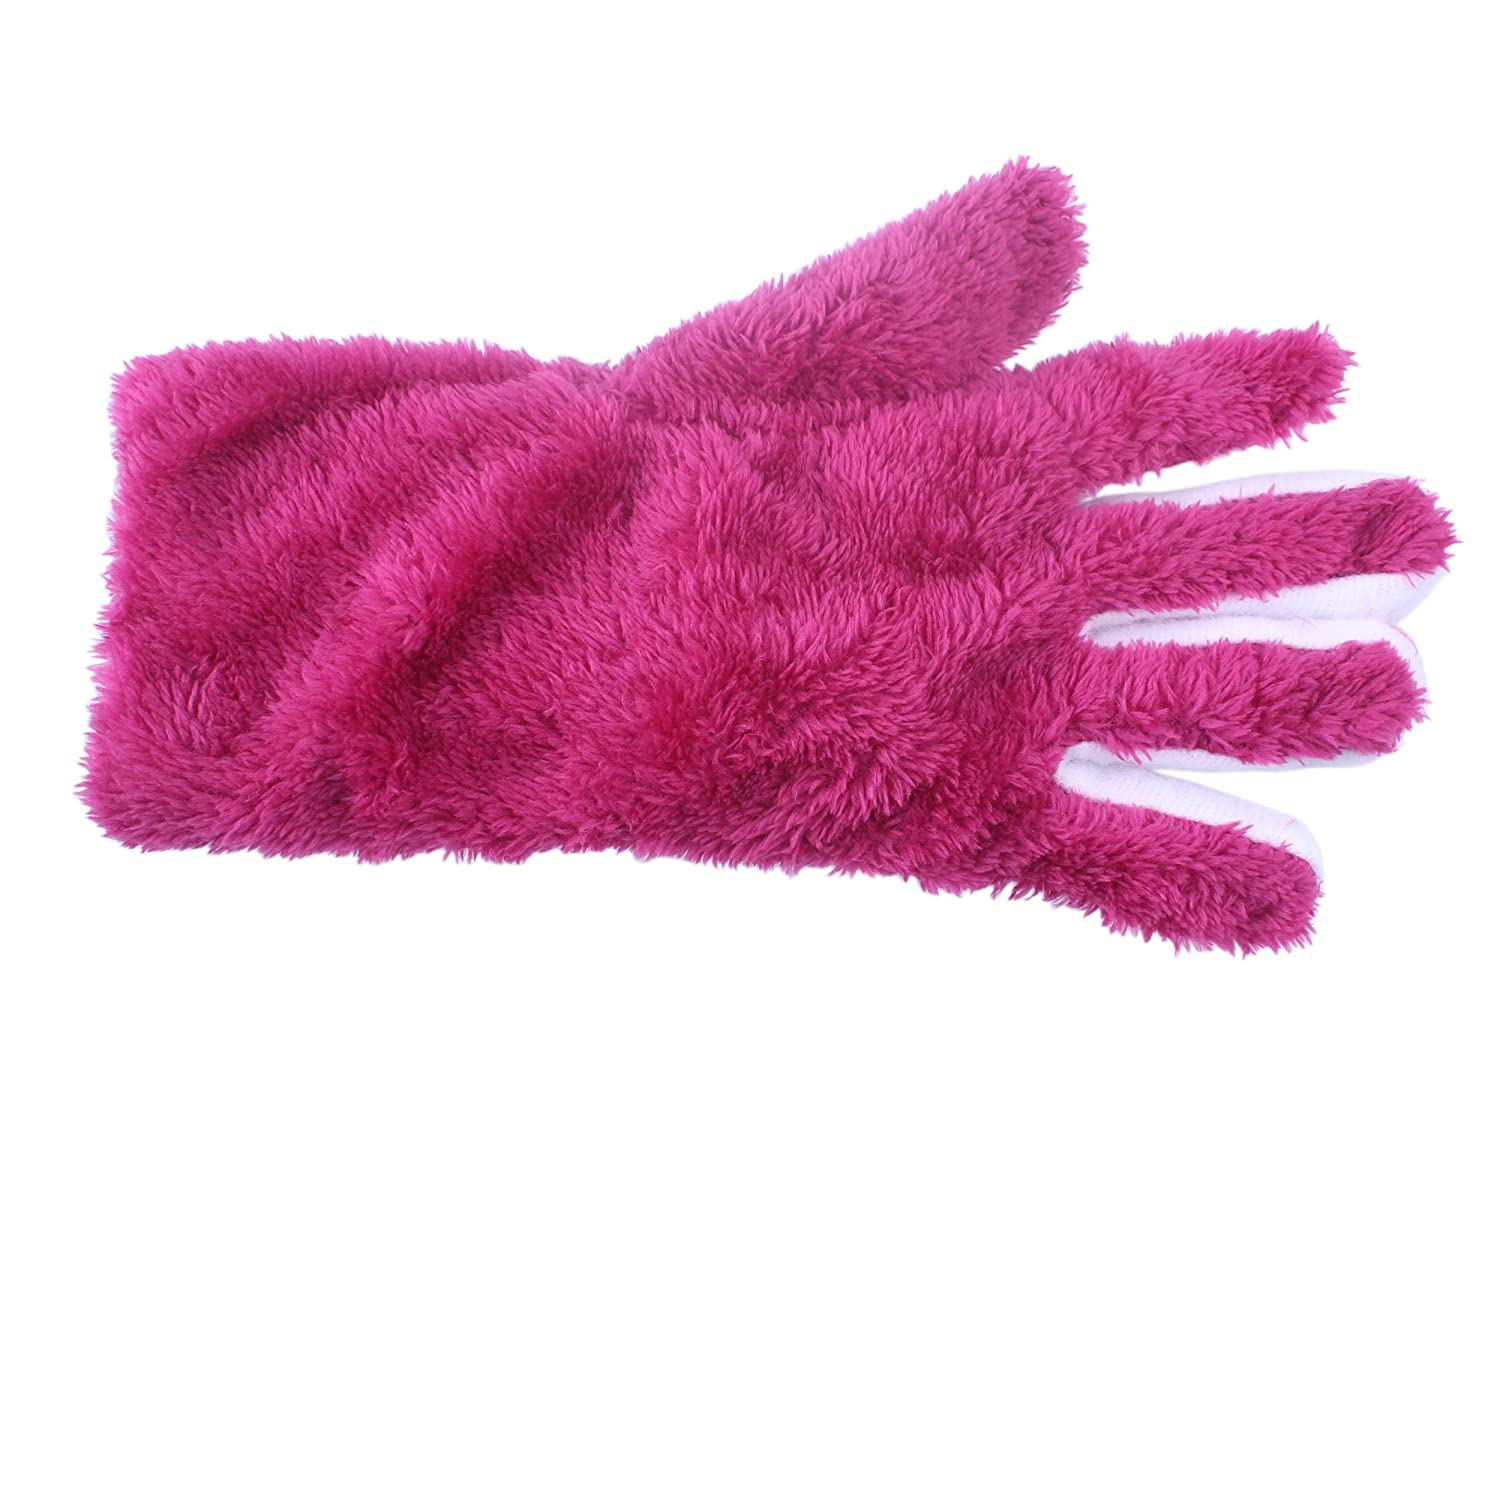 Winter Gloves With Furry Lined for little gilrs 6789 years